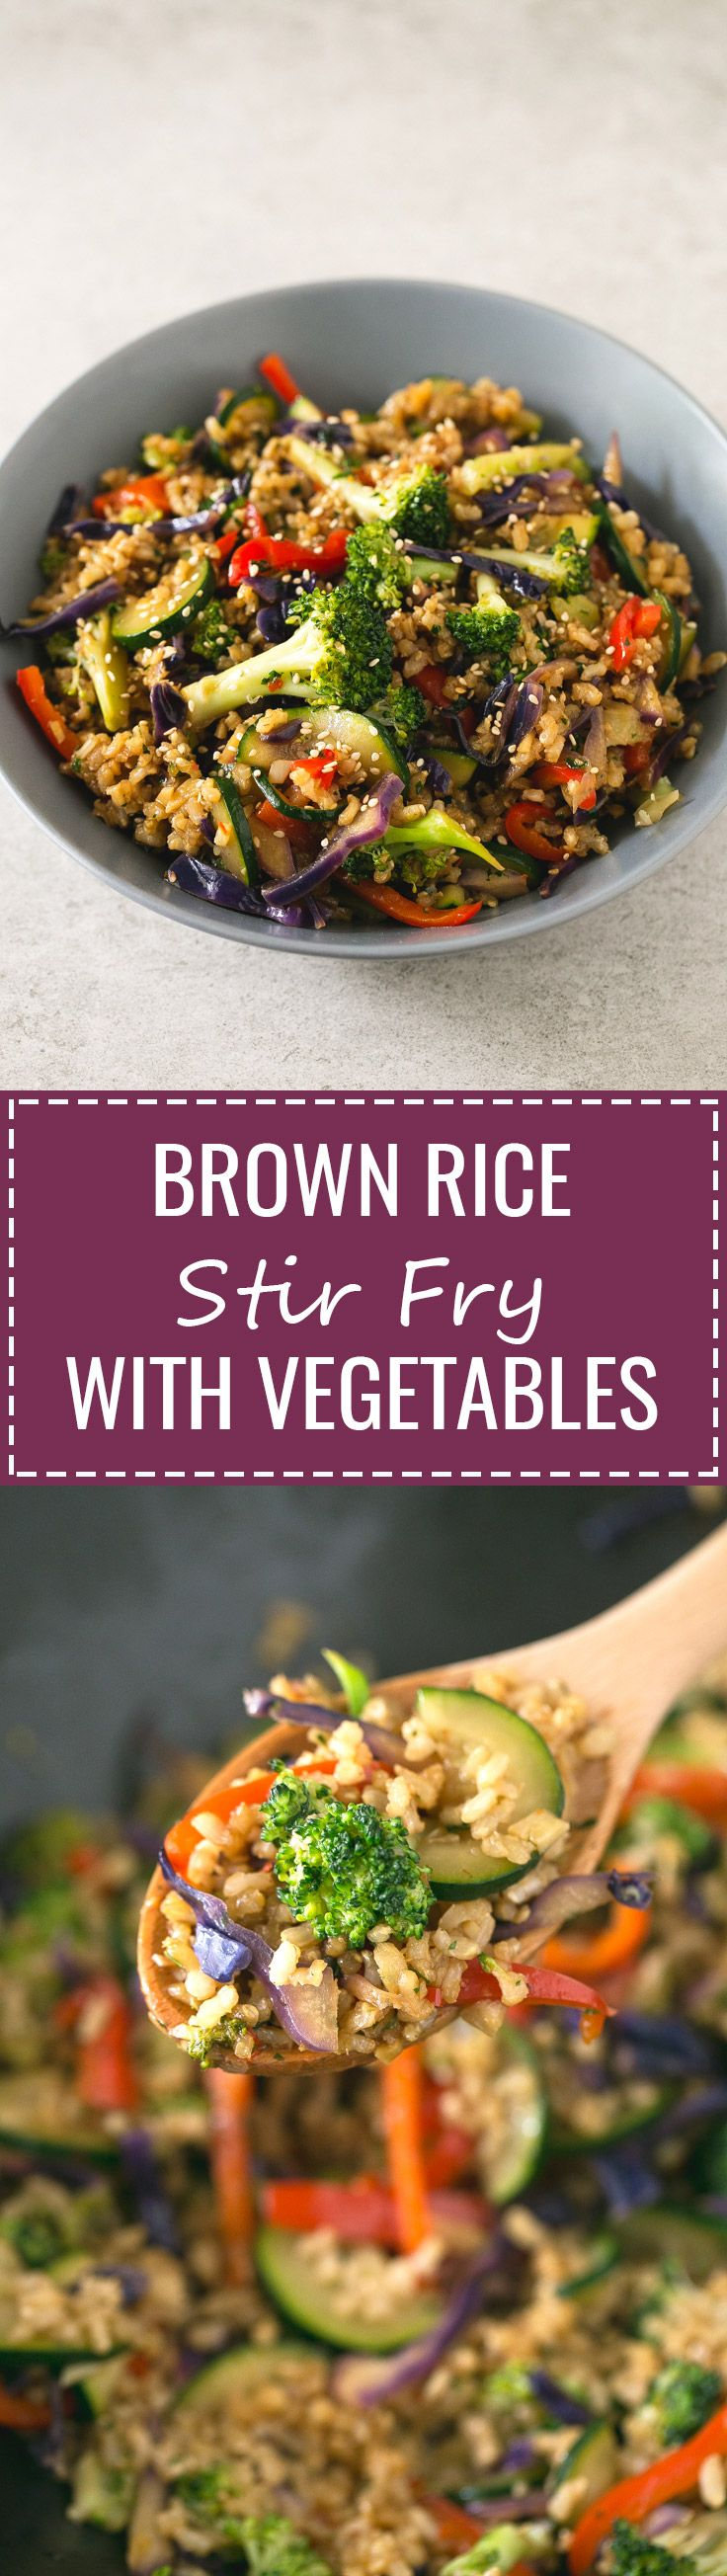 Brown Rice Stir-Fry with Vegetables #seasonedricerecipes